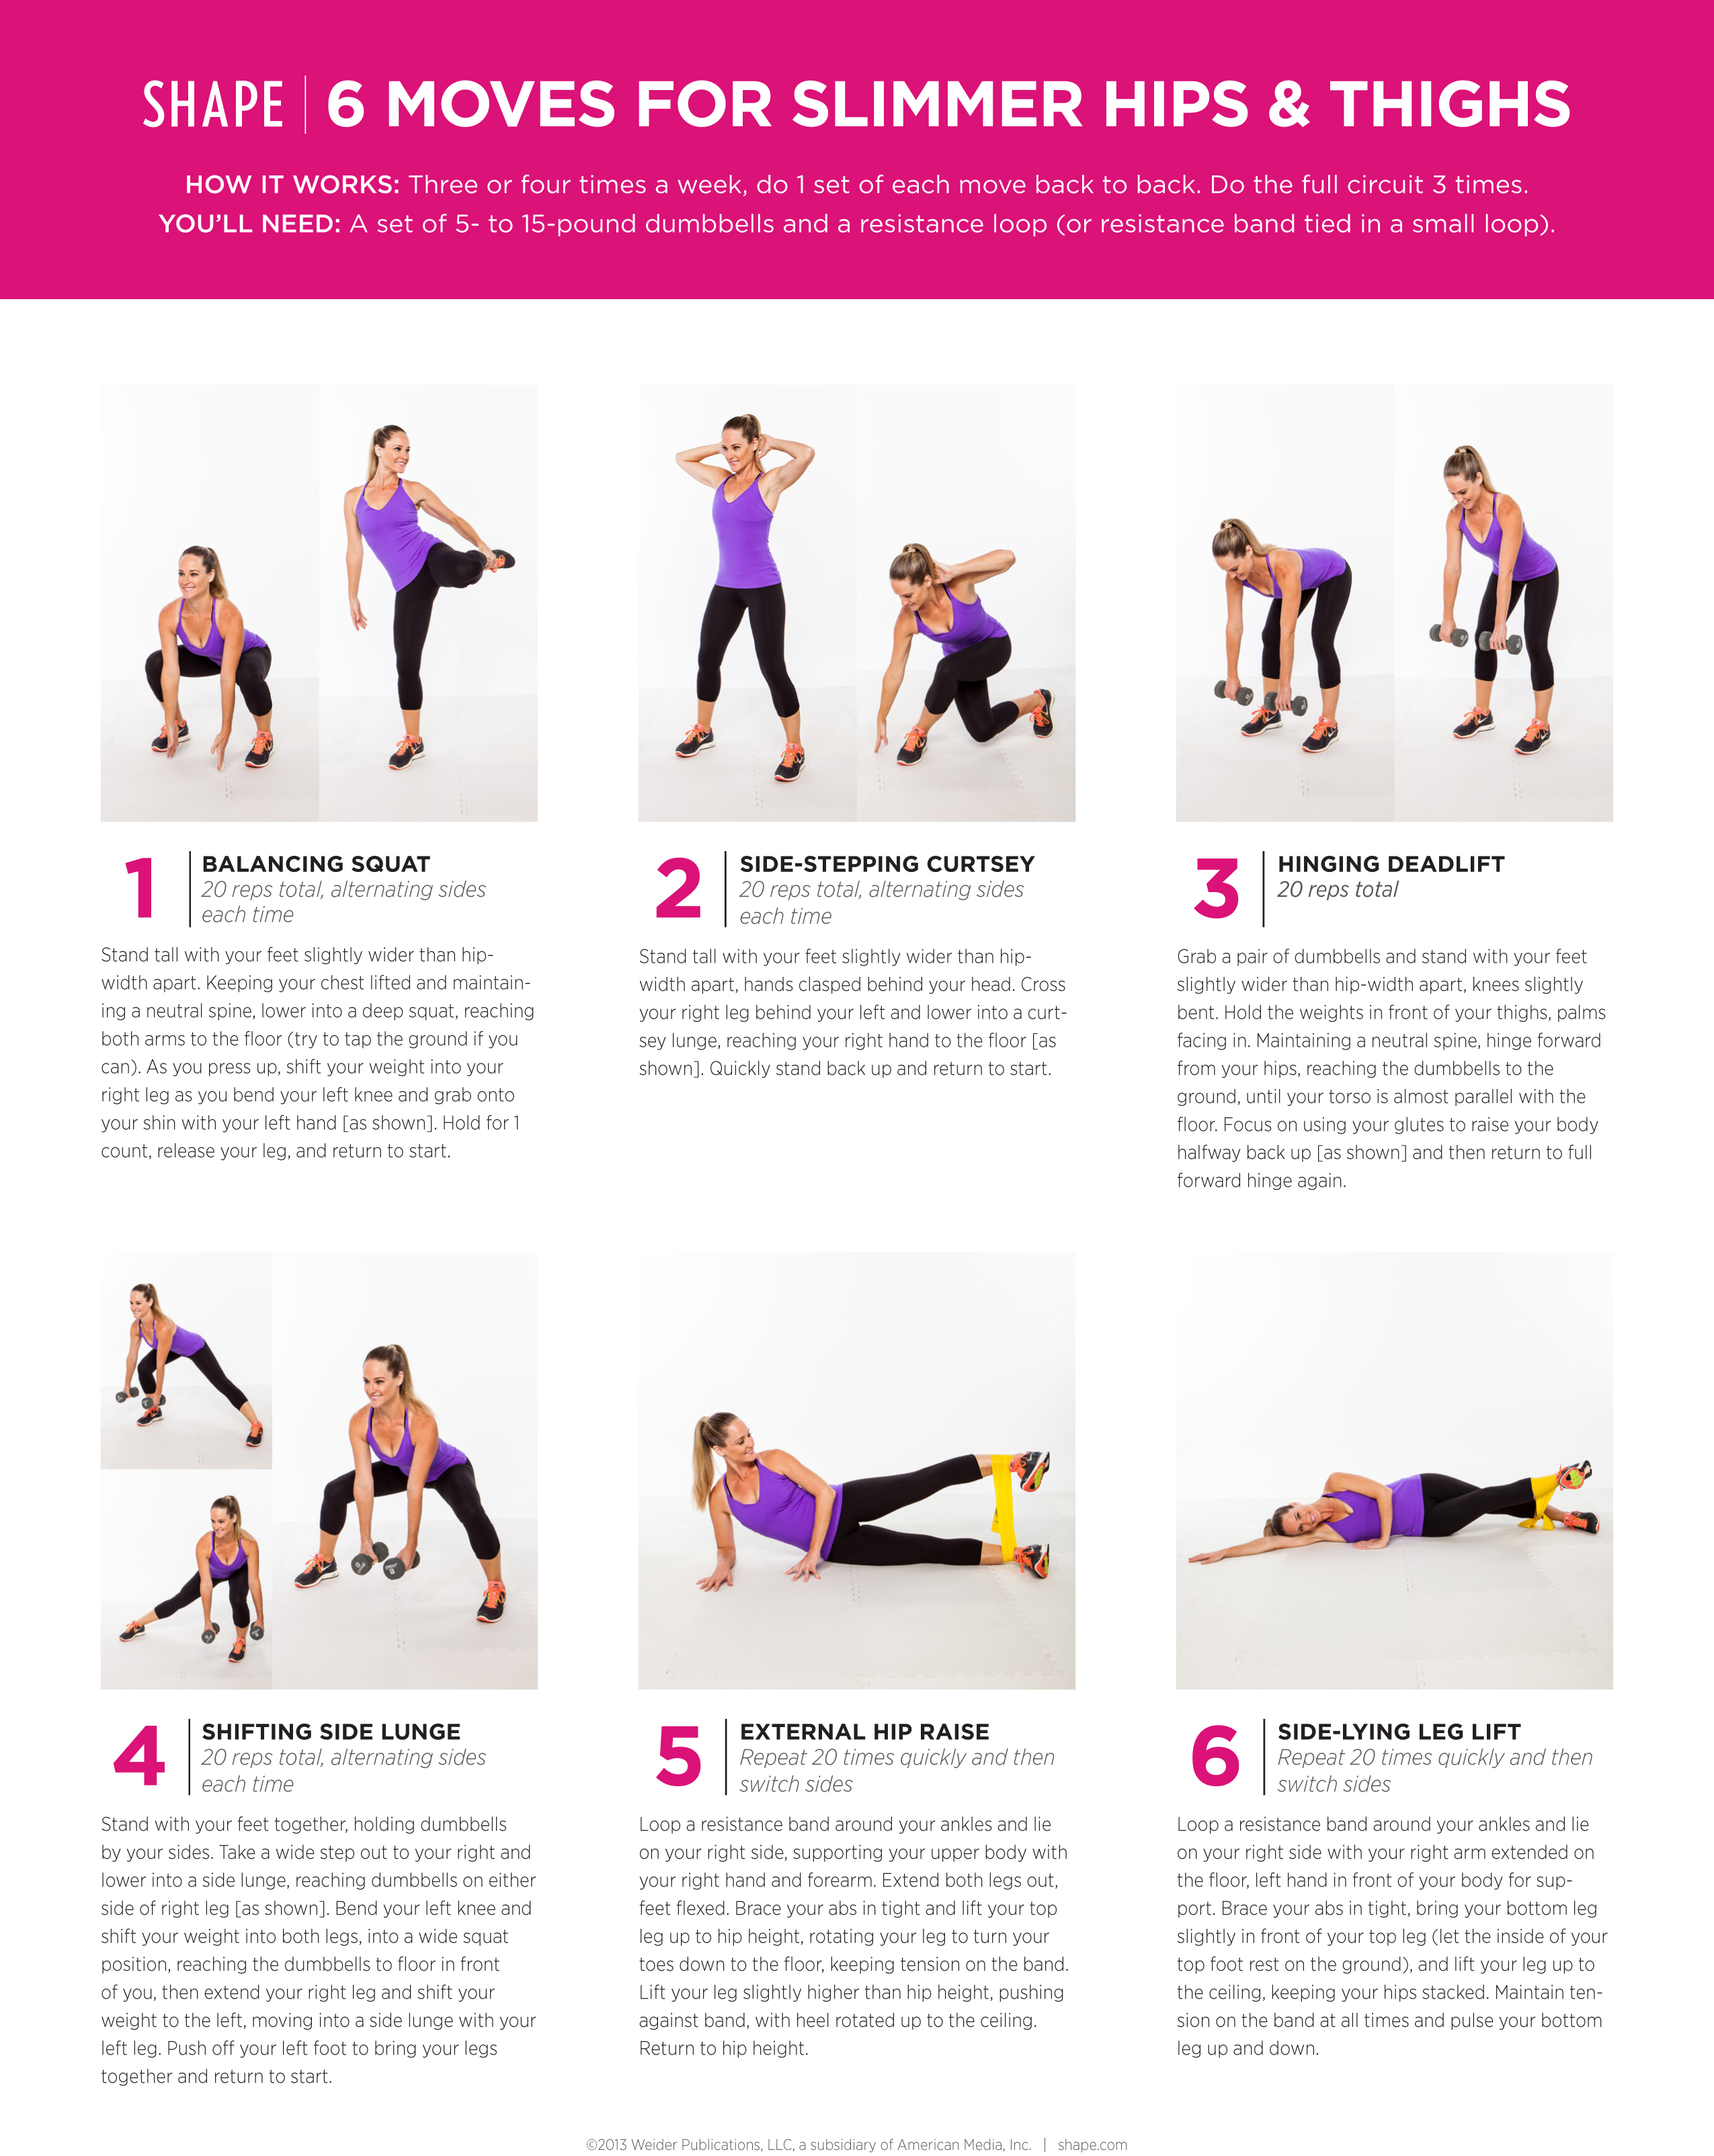 6_moves_for_slimmer_hips_and_thighs_0